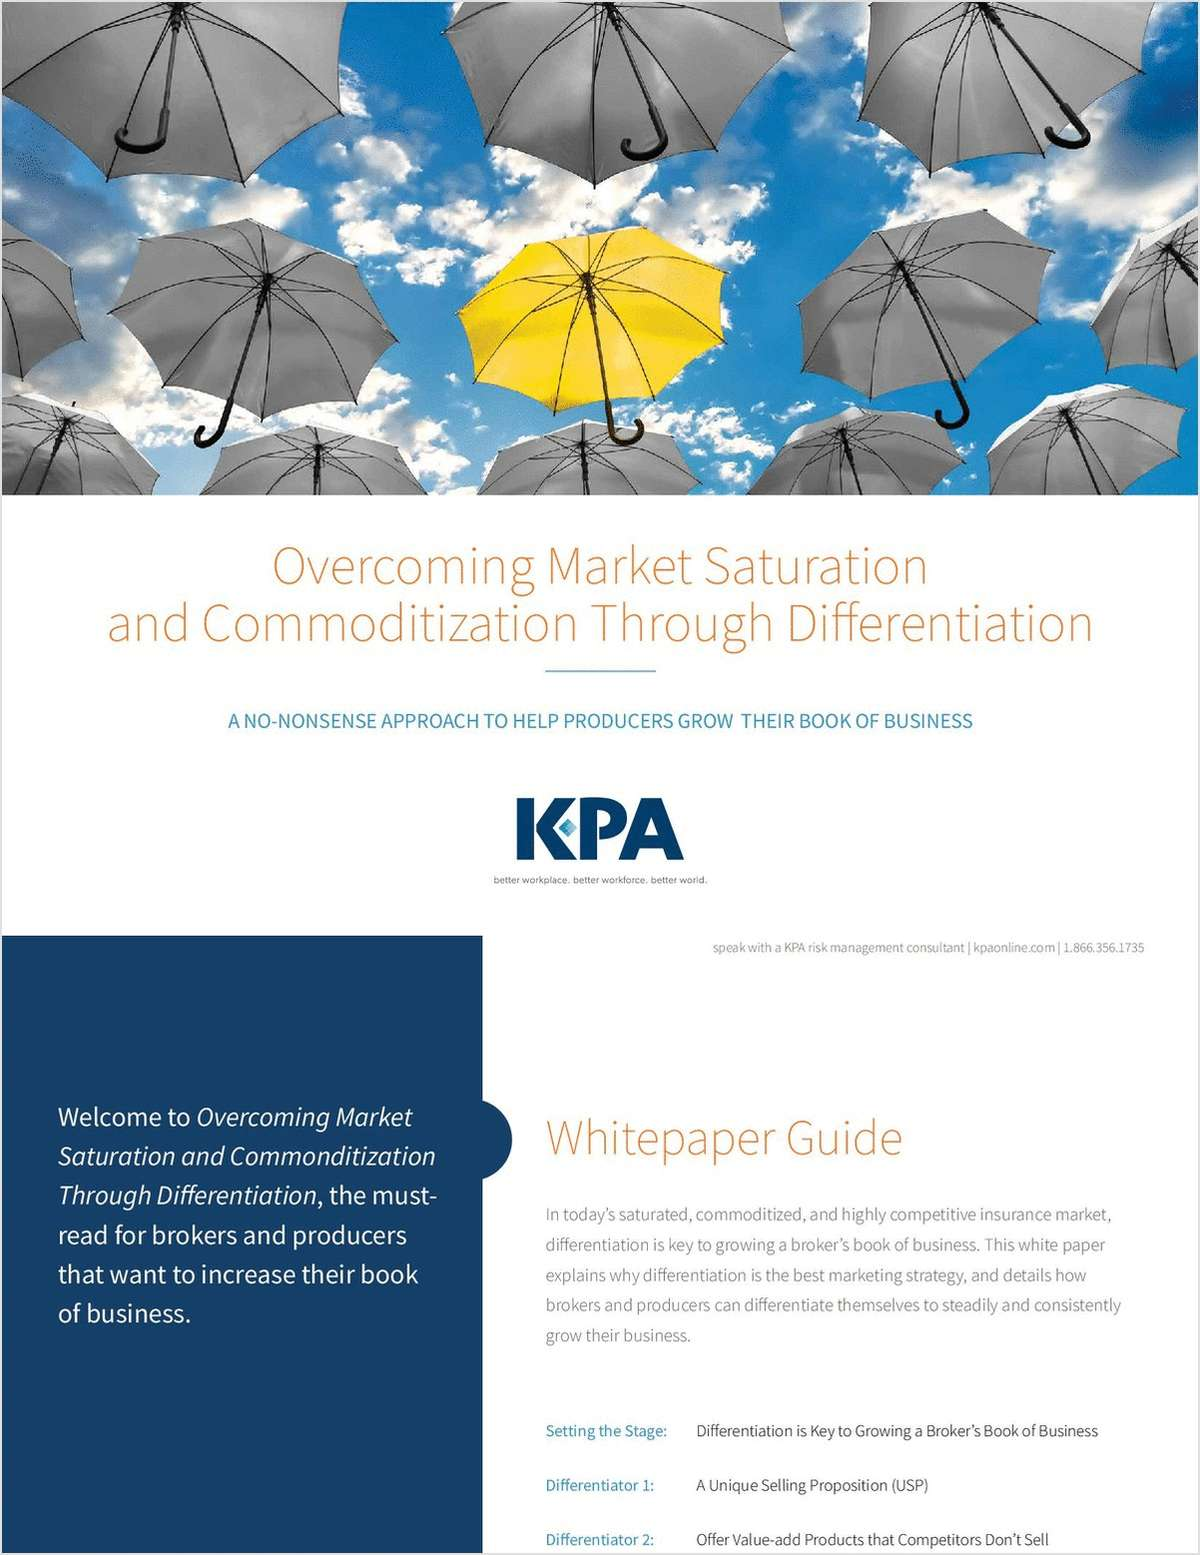 Overcoming Market Saturation: How Producers Can Grow Their Book of Business